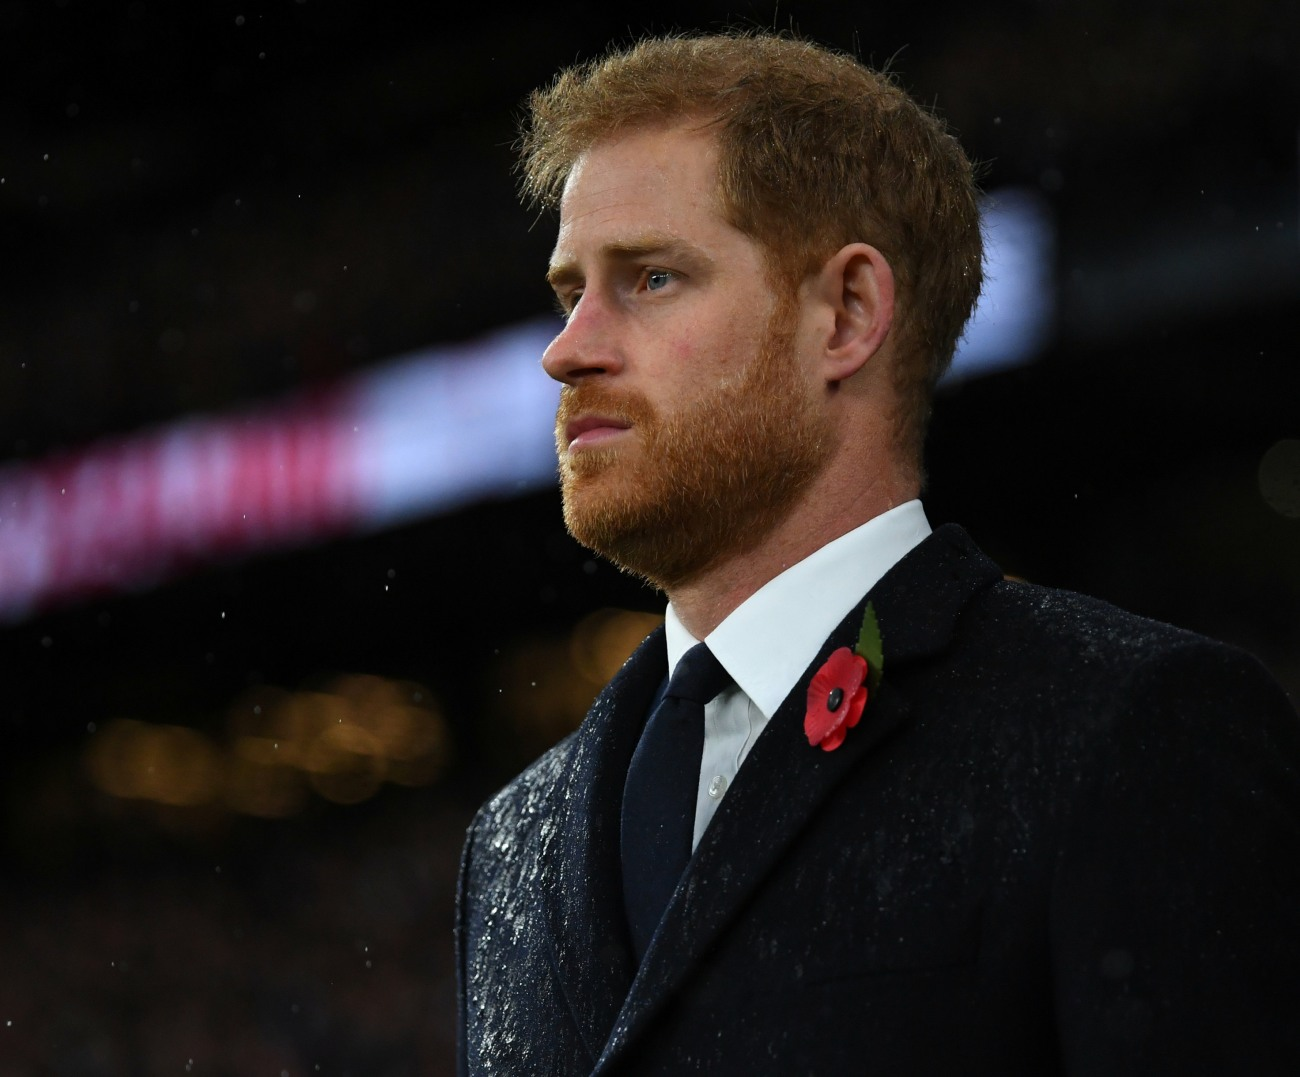 Britain's Prince Harry stands during a wreath-laying ceremony to commemorate 100 years since the end of the First World War, before the England v New Zealand rugby match at Twickenham Stadium, in London